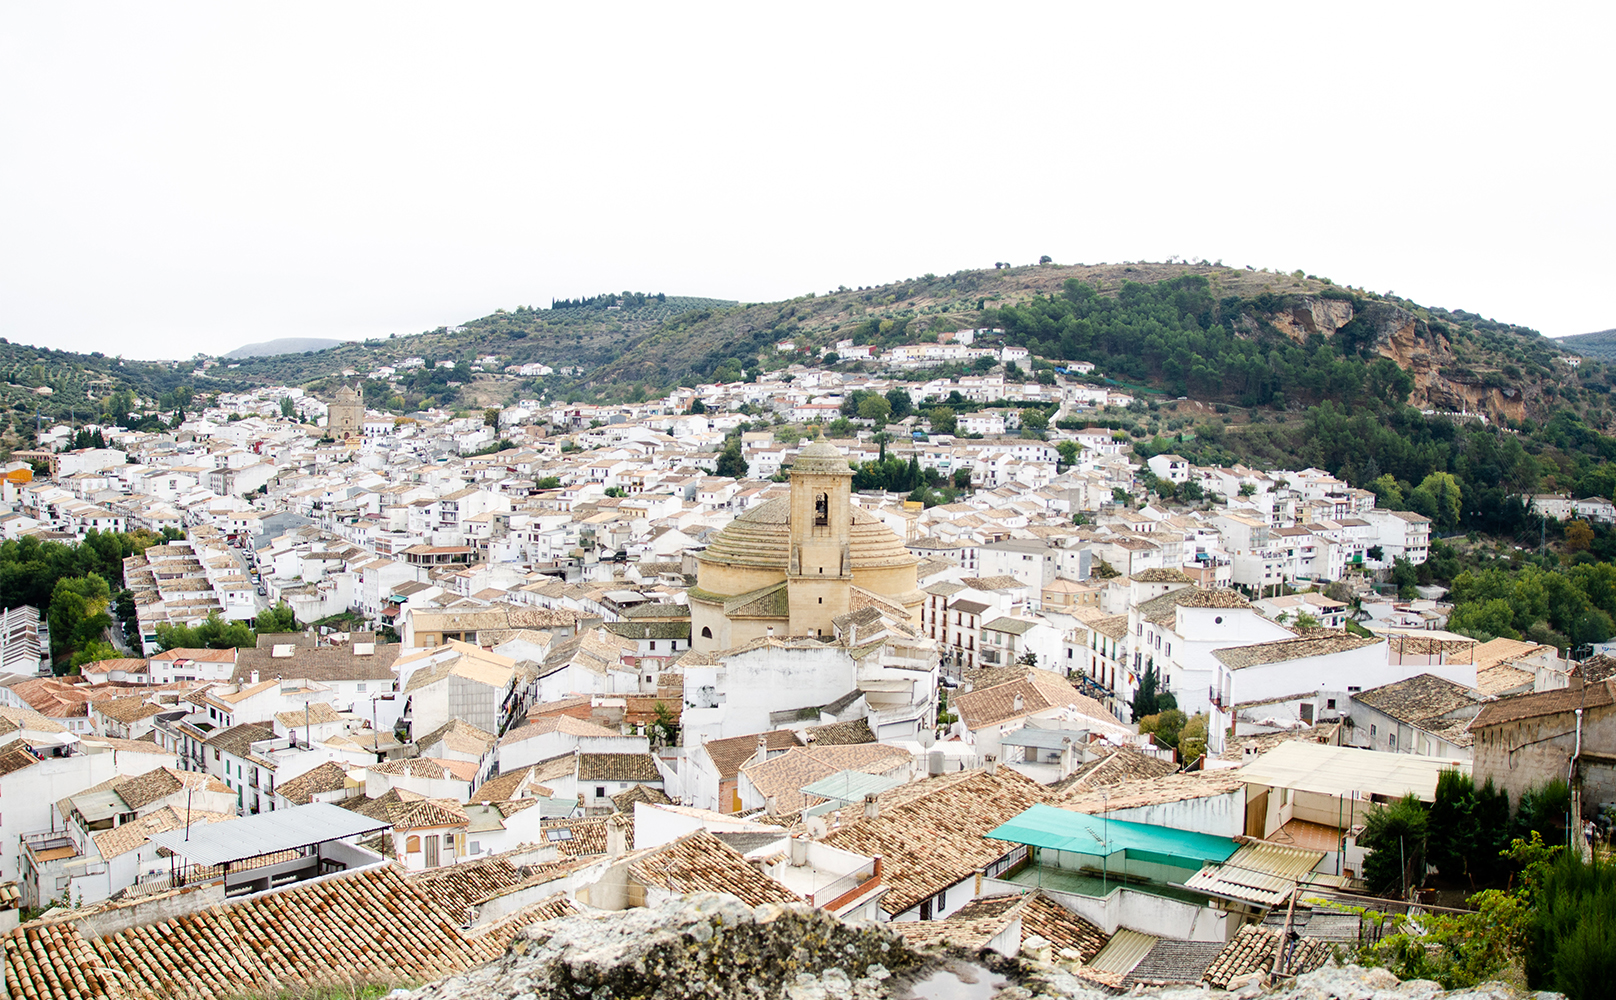 Montefrío – The Andalusian village with the famous view